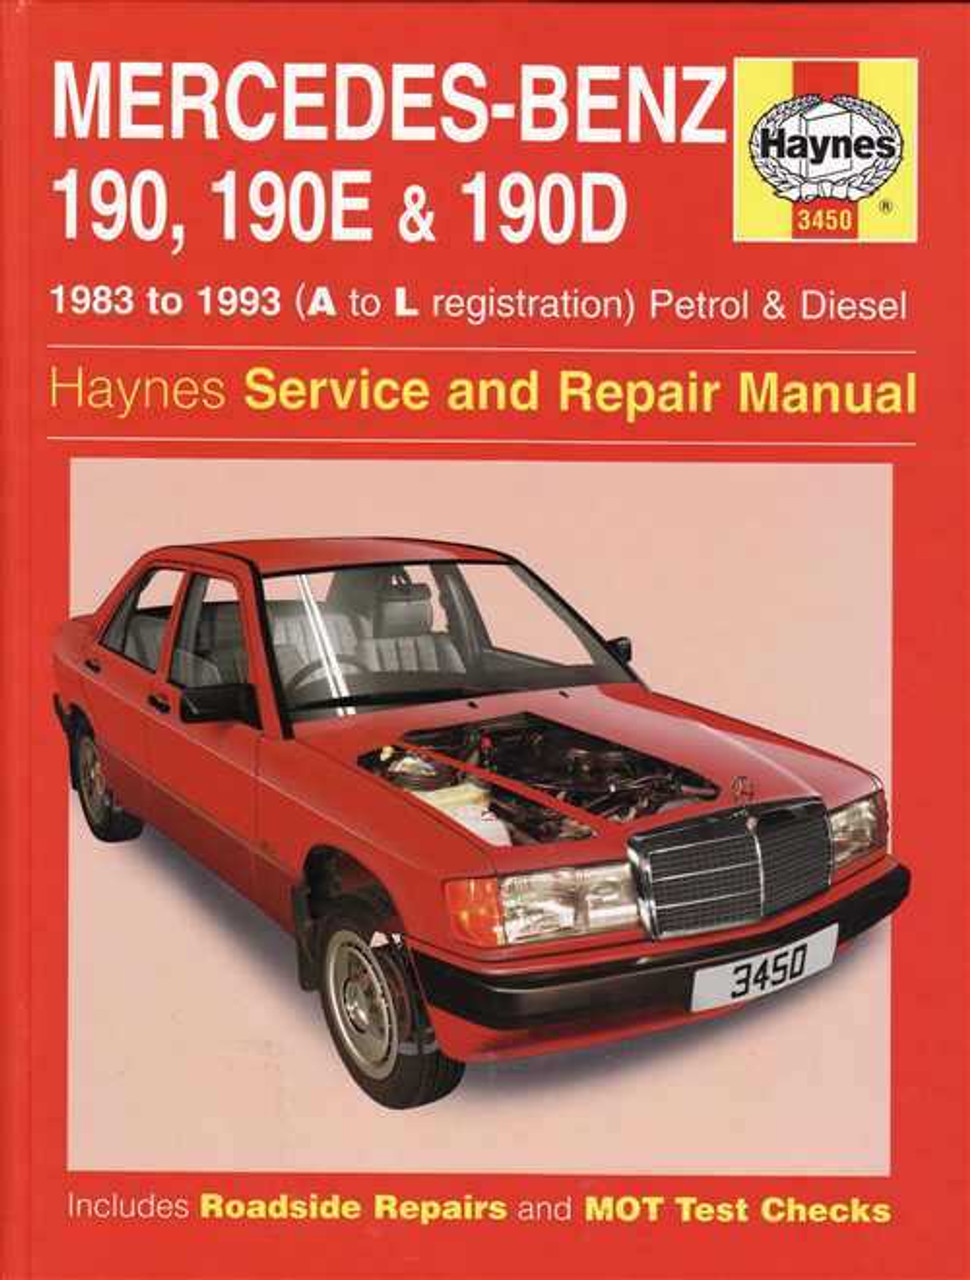 hight resolution of mercedes 450sel 6 9 in addition 1993 mercedes 190e engine diagram mercedes 190e 2 6 engine diagram